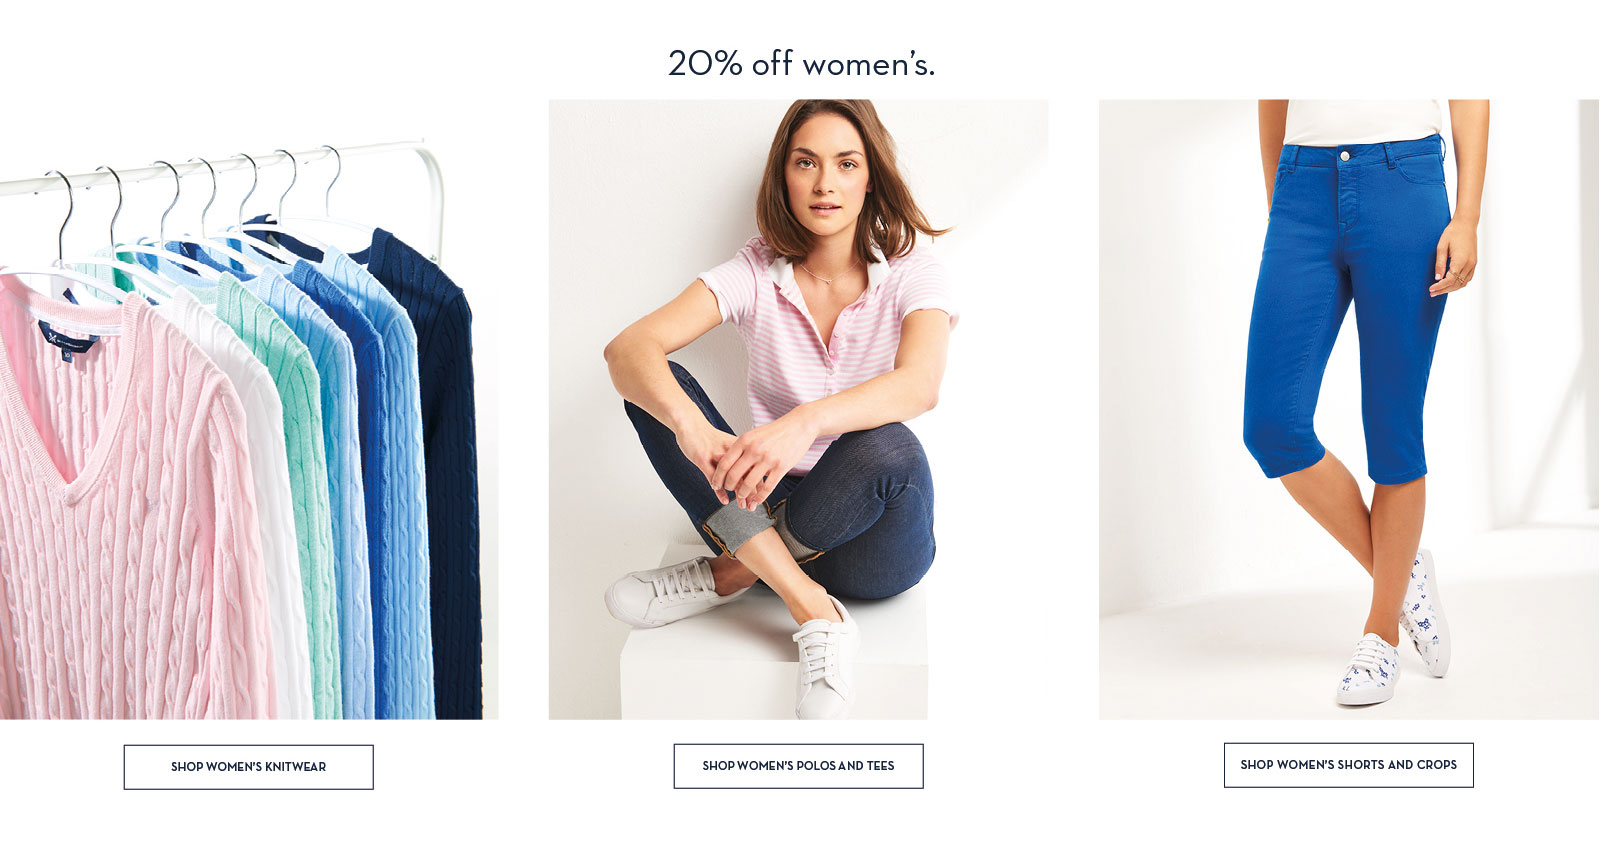 20% off women's knitwear polos tees shorts and crops